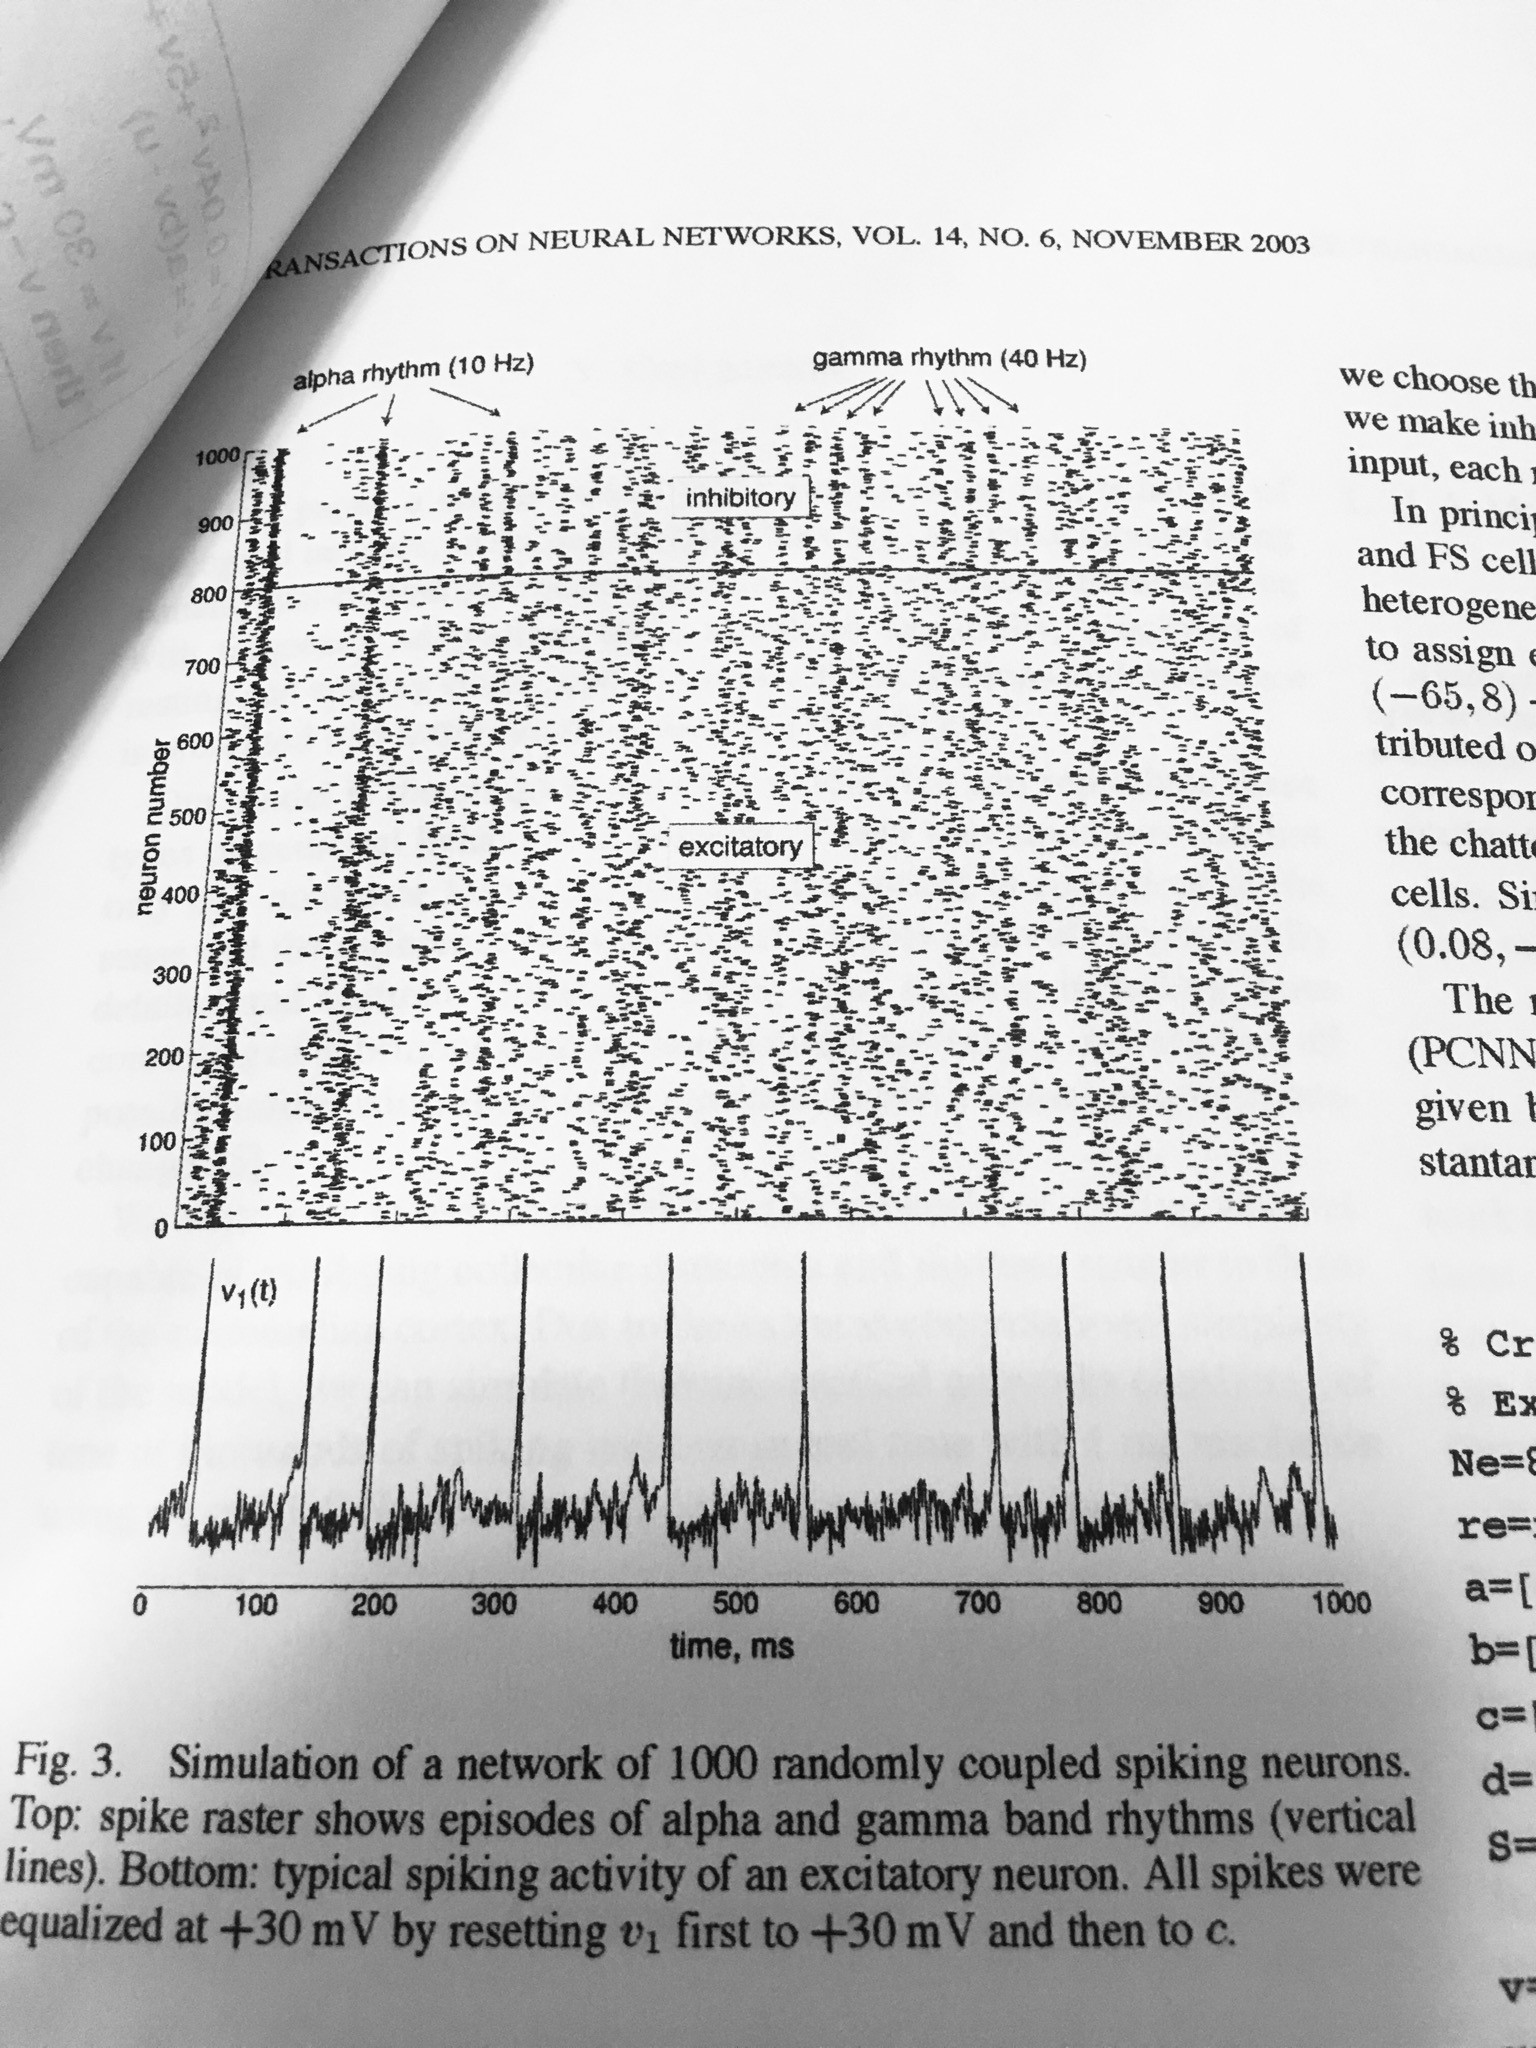 A firing event on one of the neurons causes a dot to appear on this graph: In cortical songs, this causes a light to flash on the corresponding musician's music.